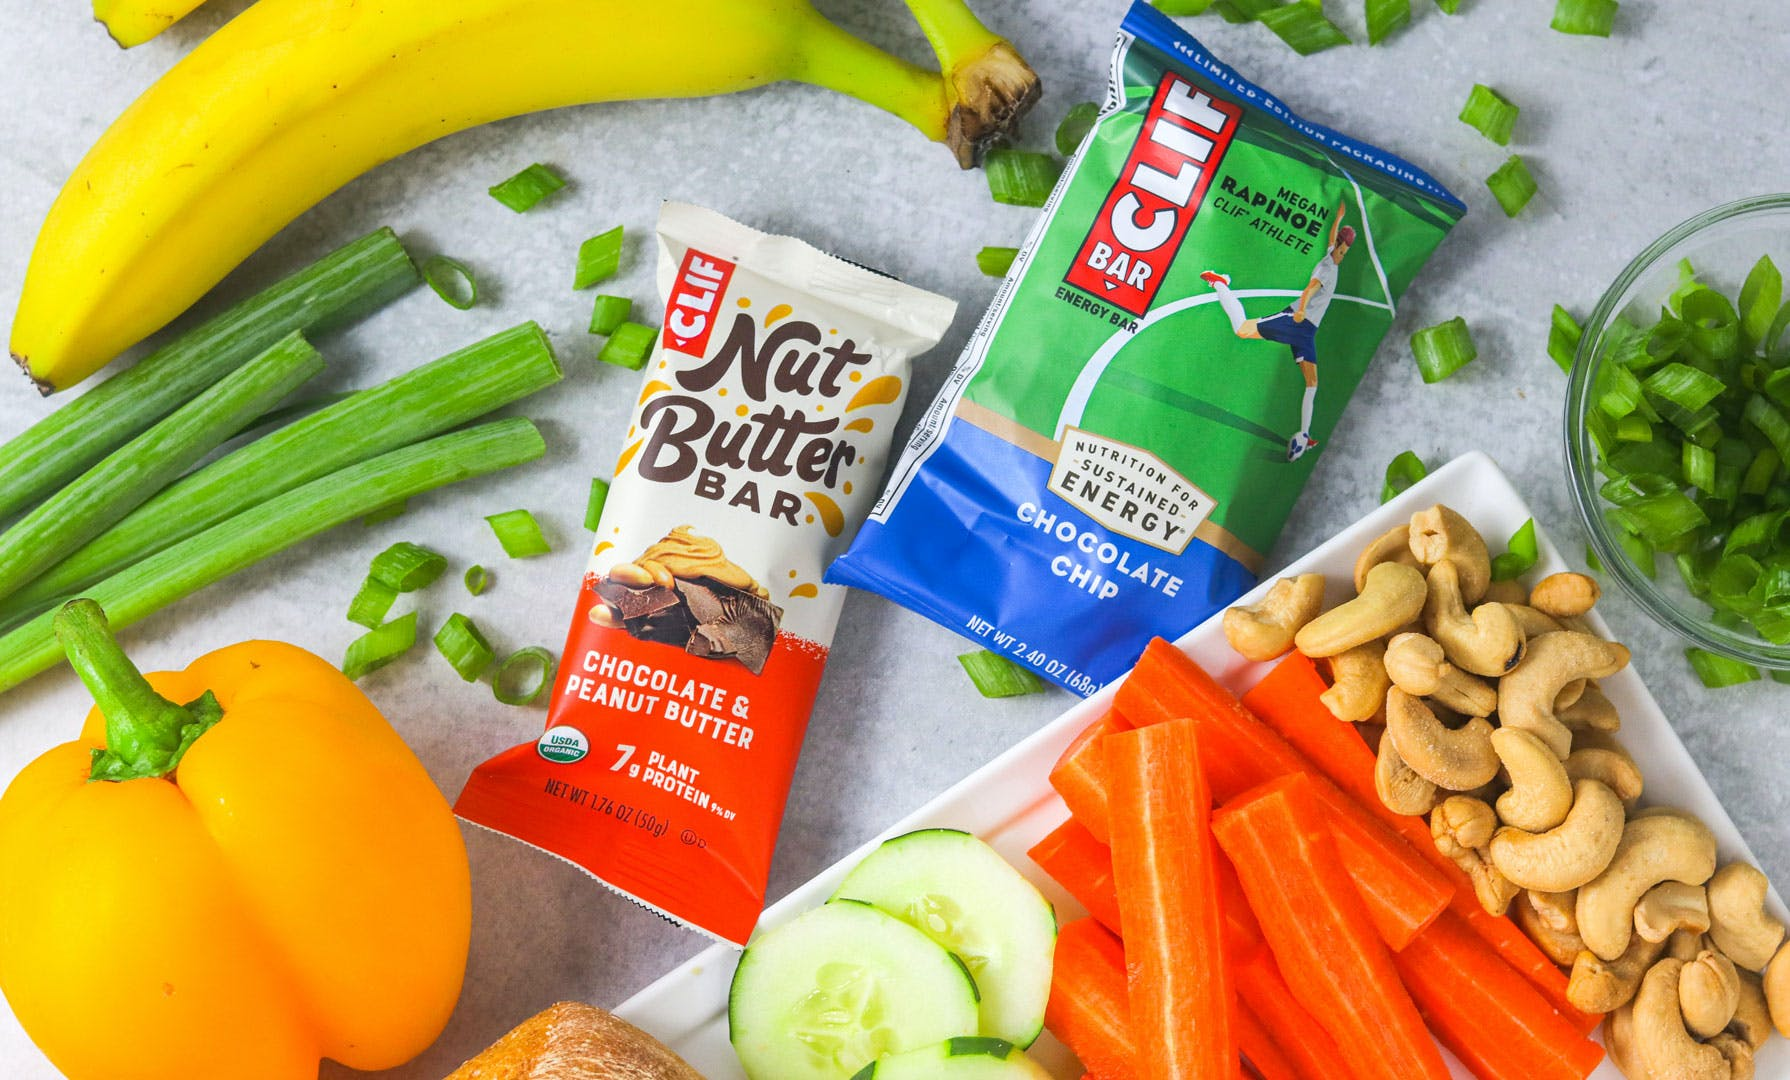 CLIF Bars with vegetables